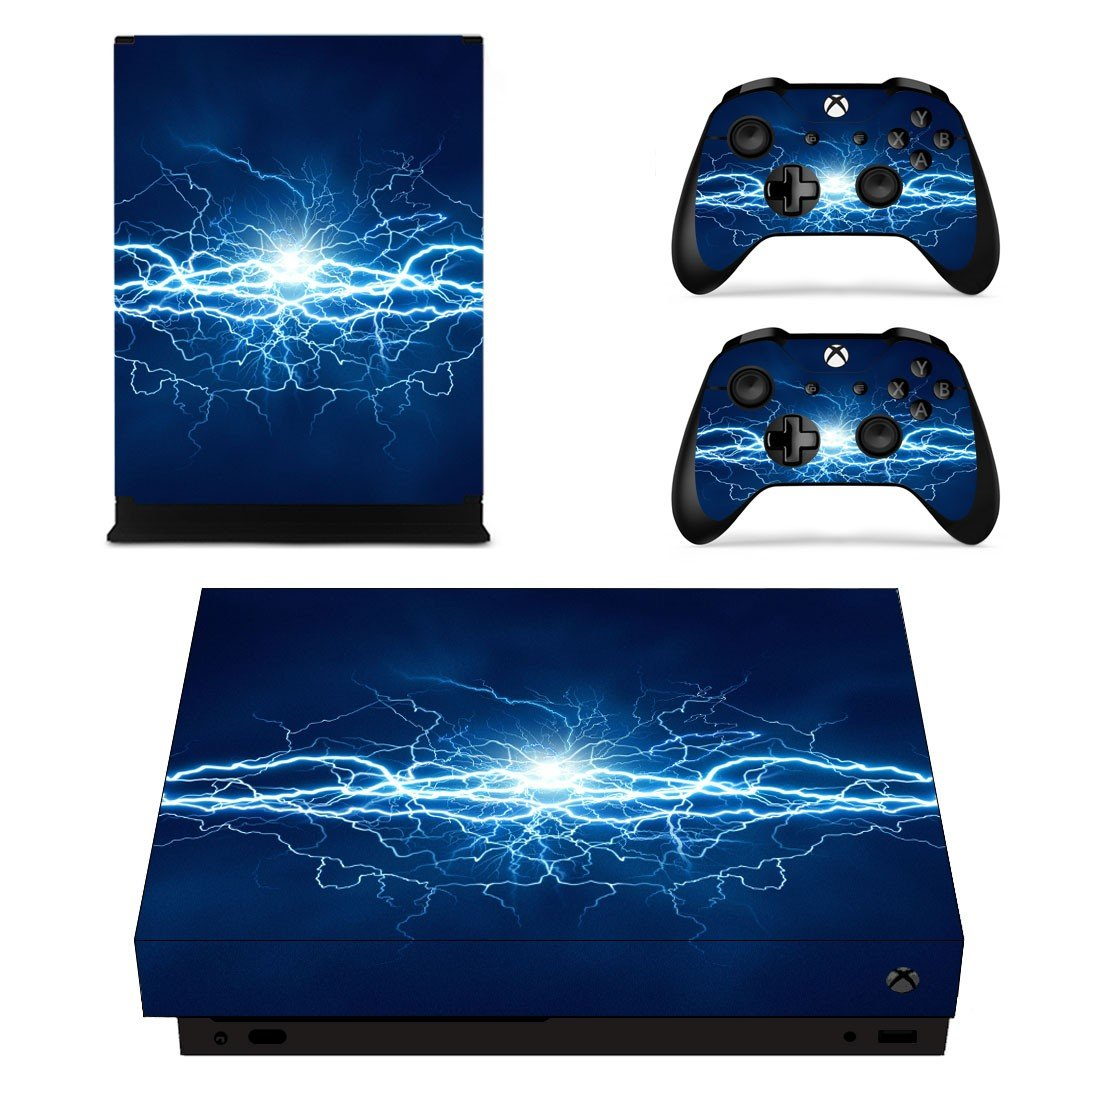 Electric Lightning sky xbox one X skin decal for console and 2 controllers